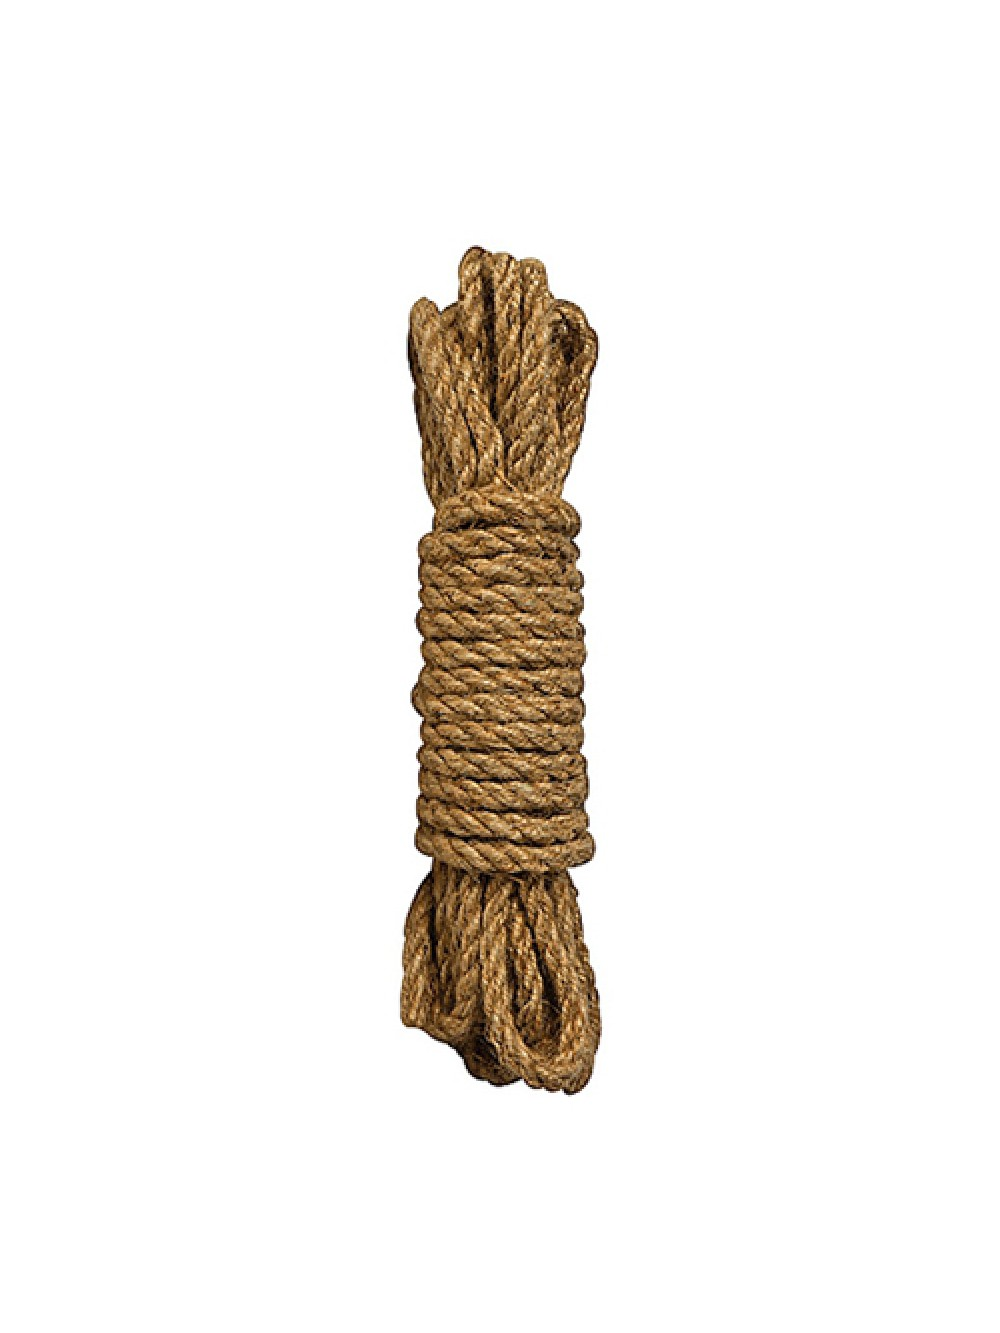 Shibari Rope - 10m - Brown